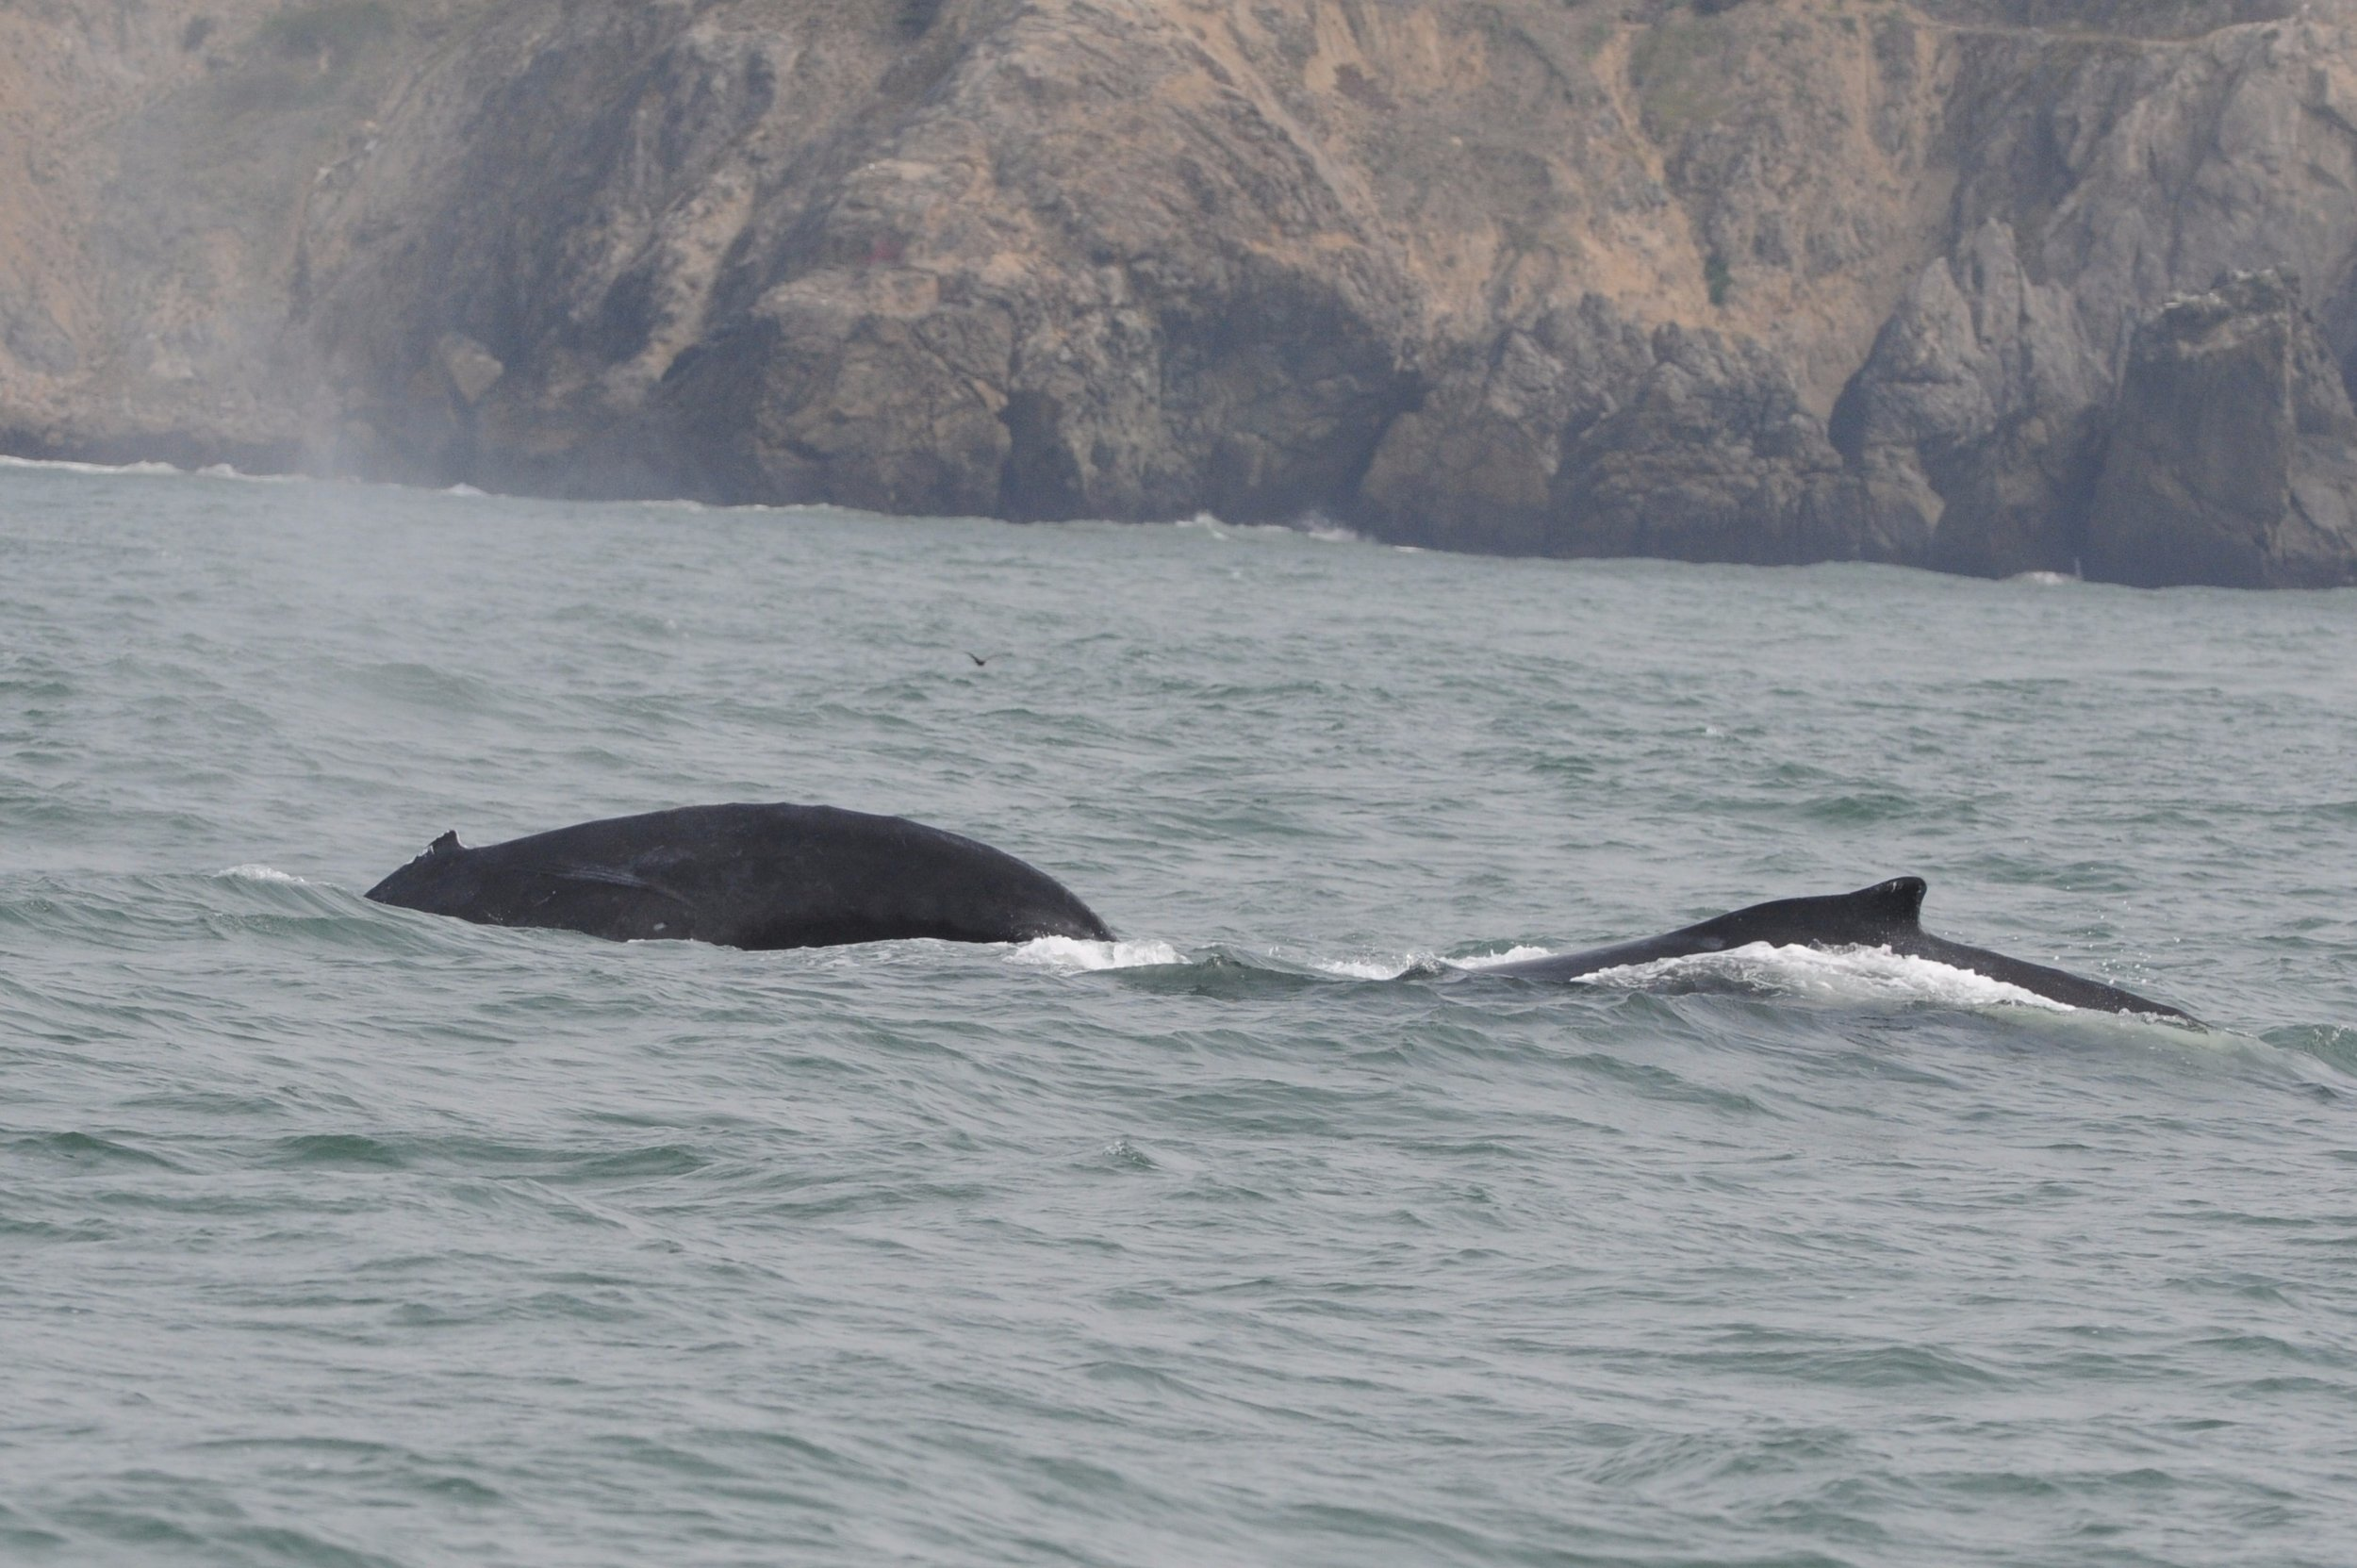 Mother and calf surfacing together.